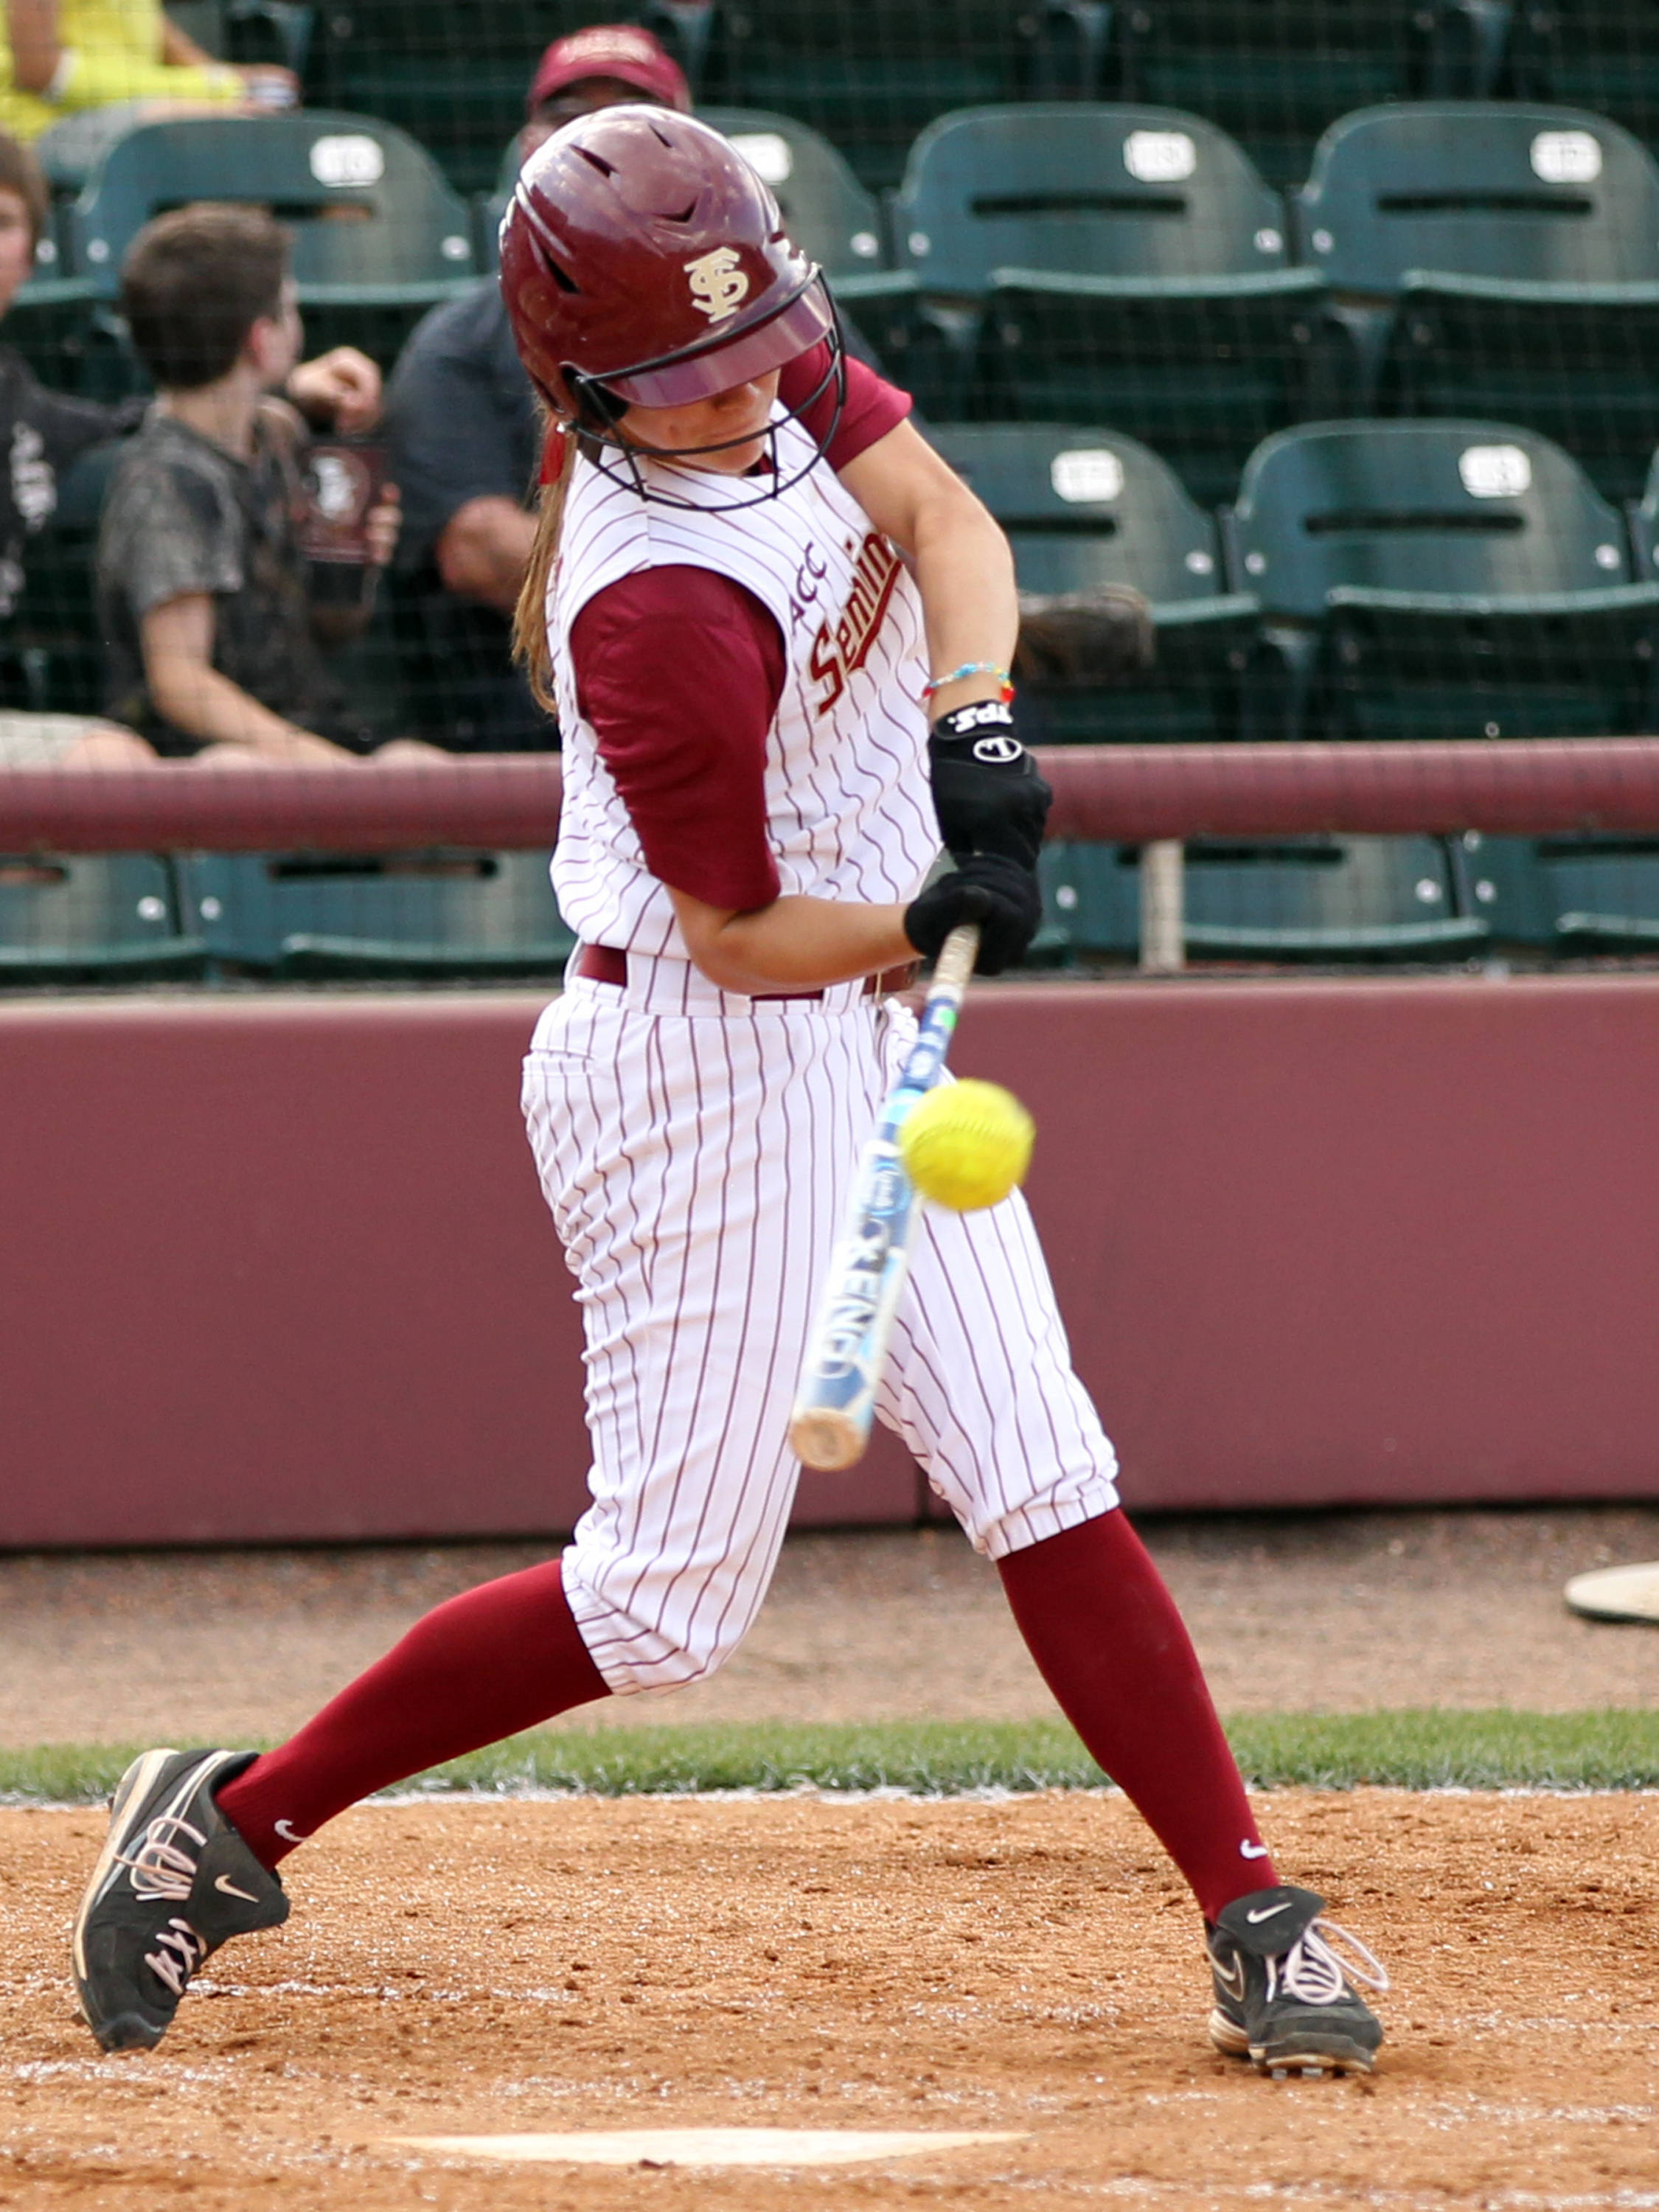 Bailey Schinella, FSU VS BC, ACC Championship Quarterfinals, Tallahassee, FL,  05/09/13 . (Photo by Steve Musco)